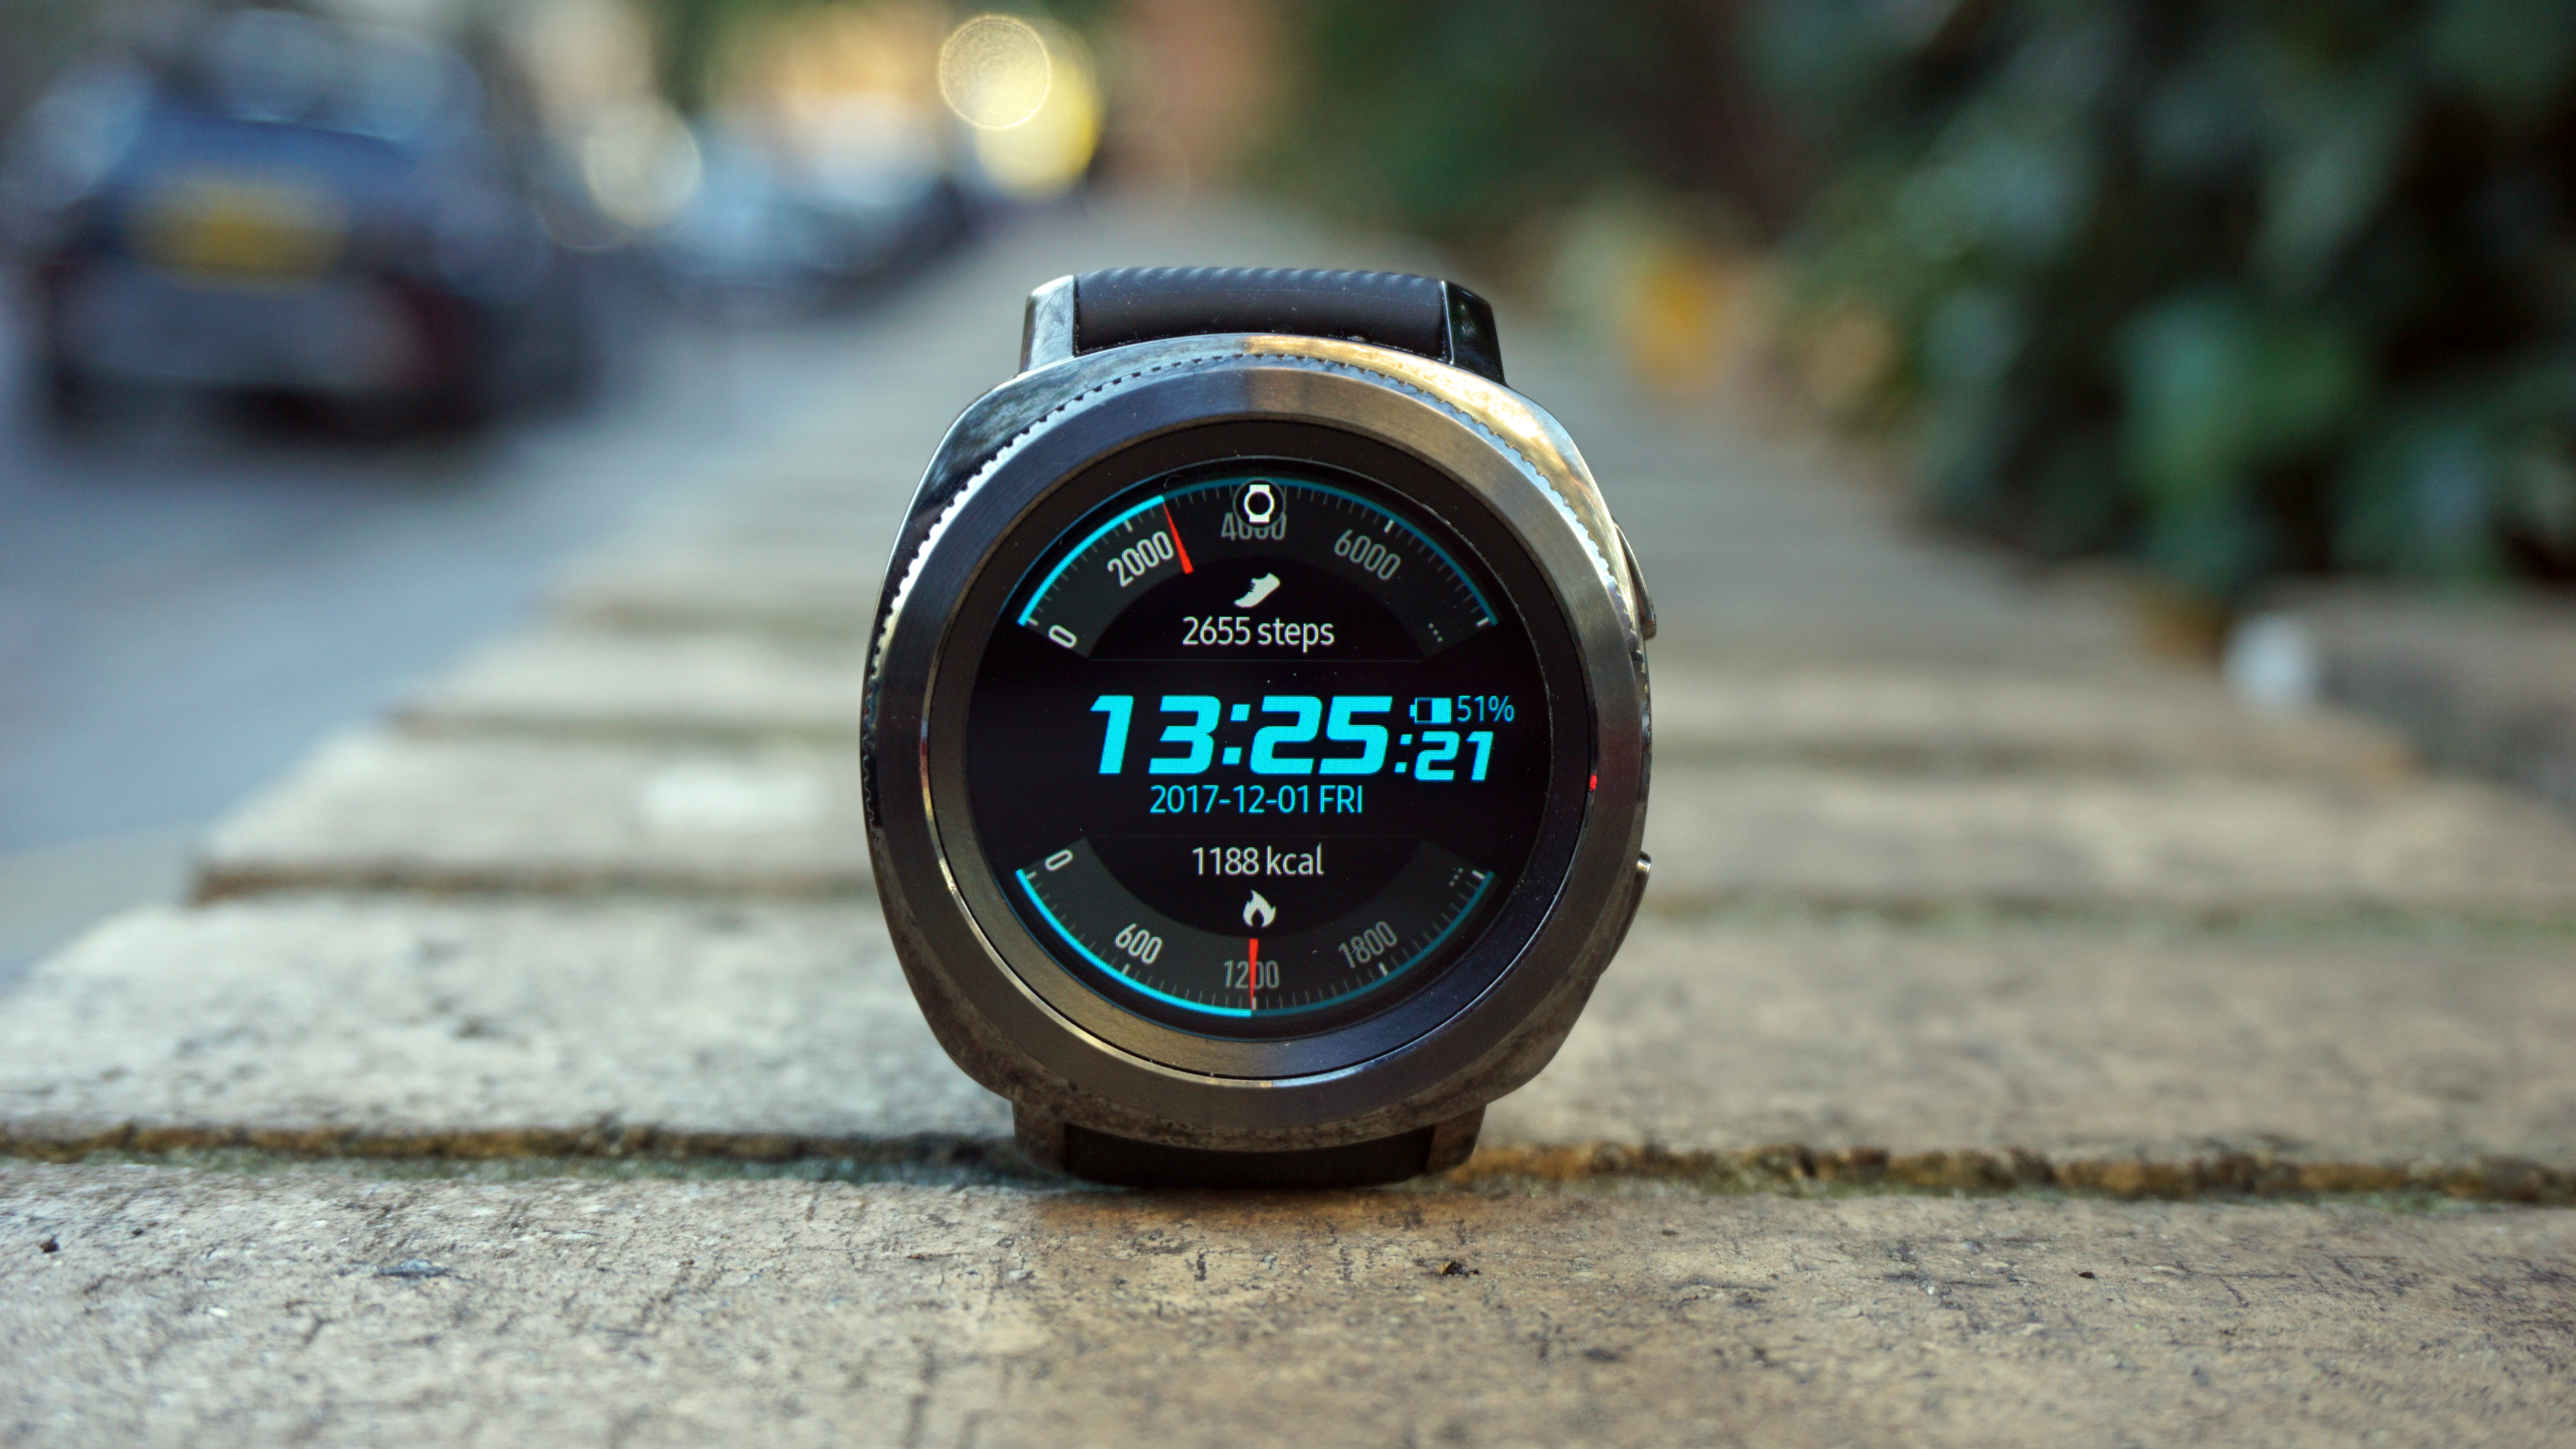 c17007dfab5 Samsung Galaxy Sport renders may give a first look at Samsung s next  smartwatch